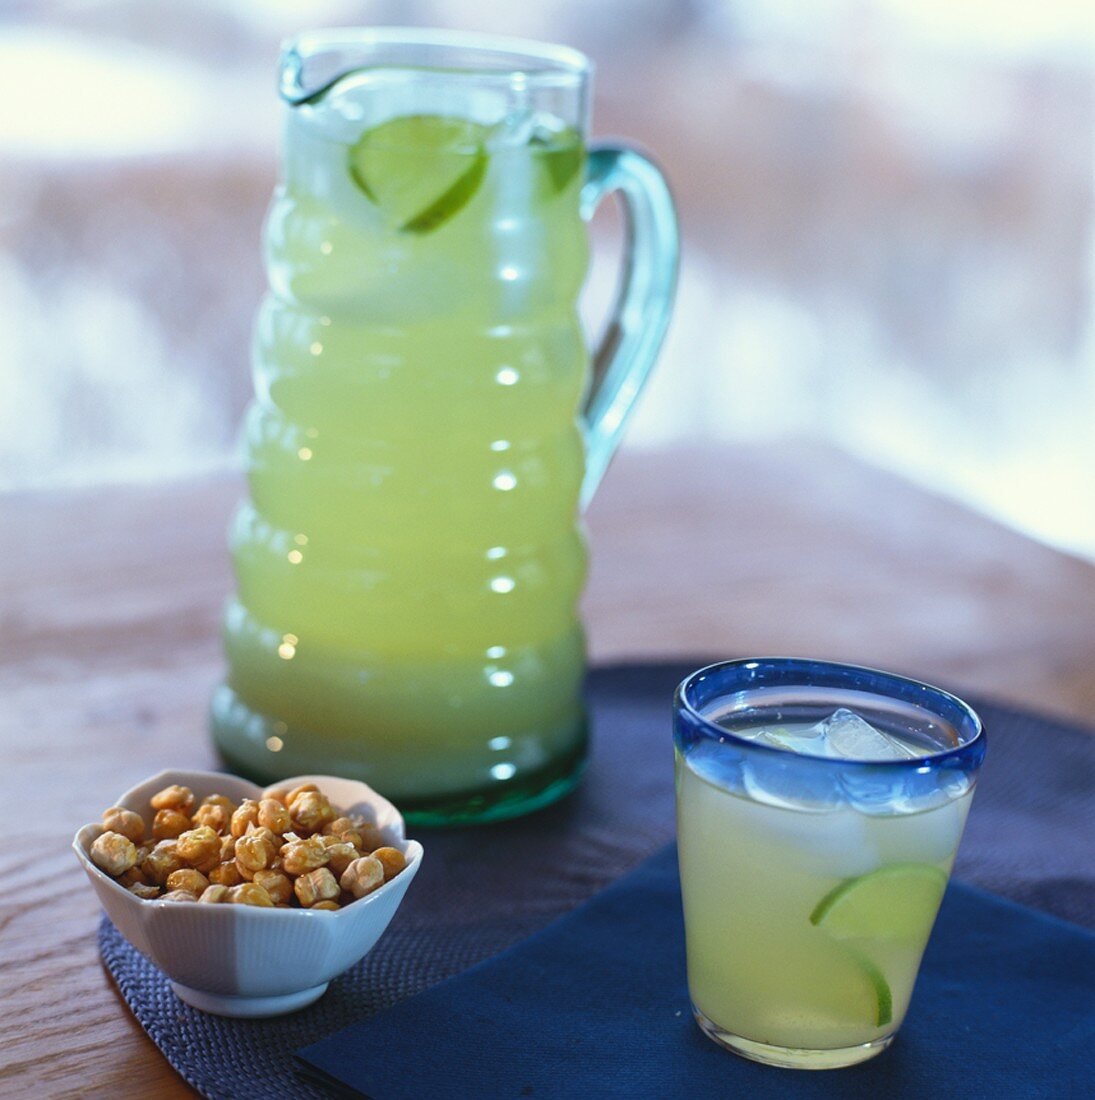 Barley water and chick-pea nibbles